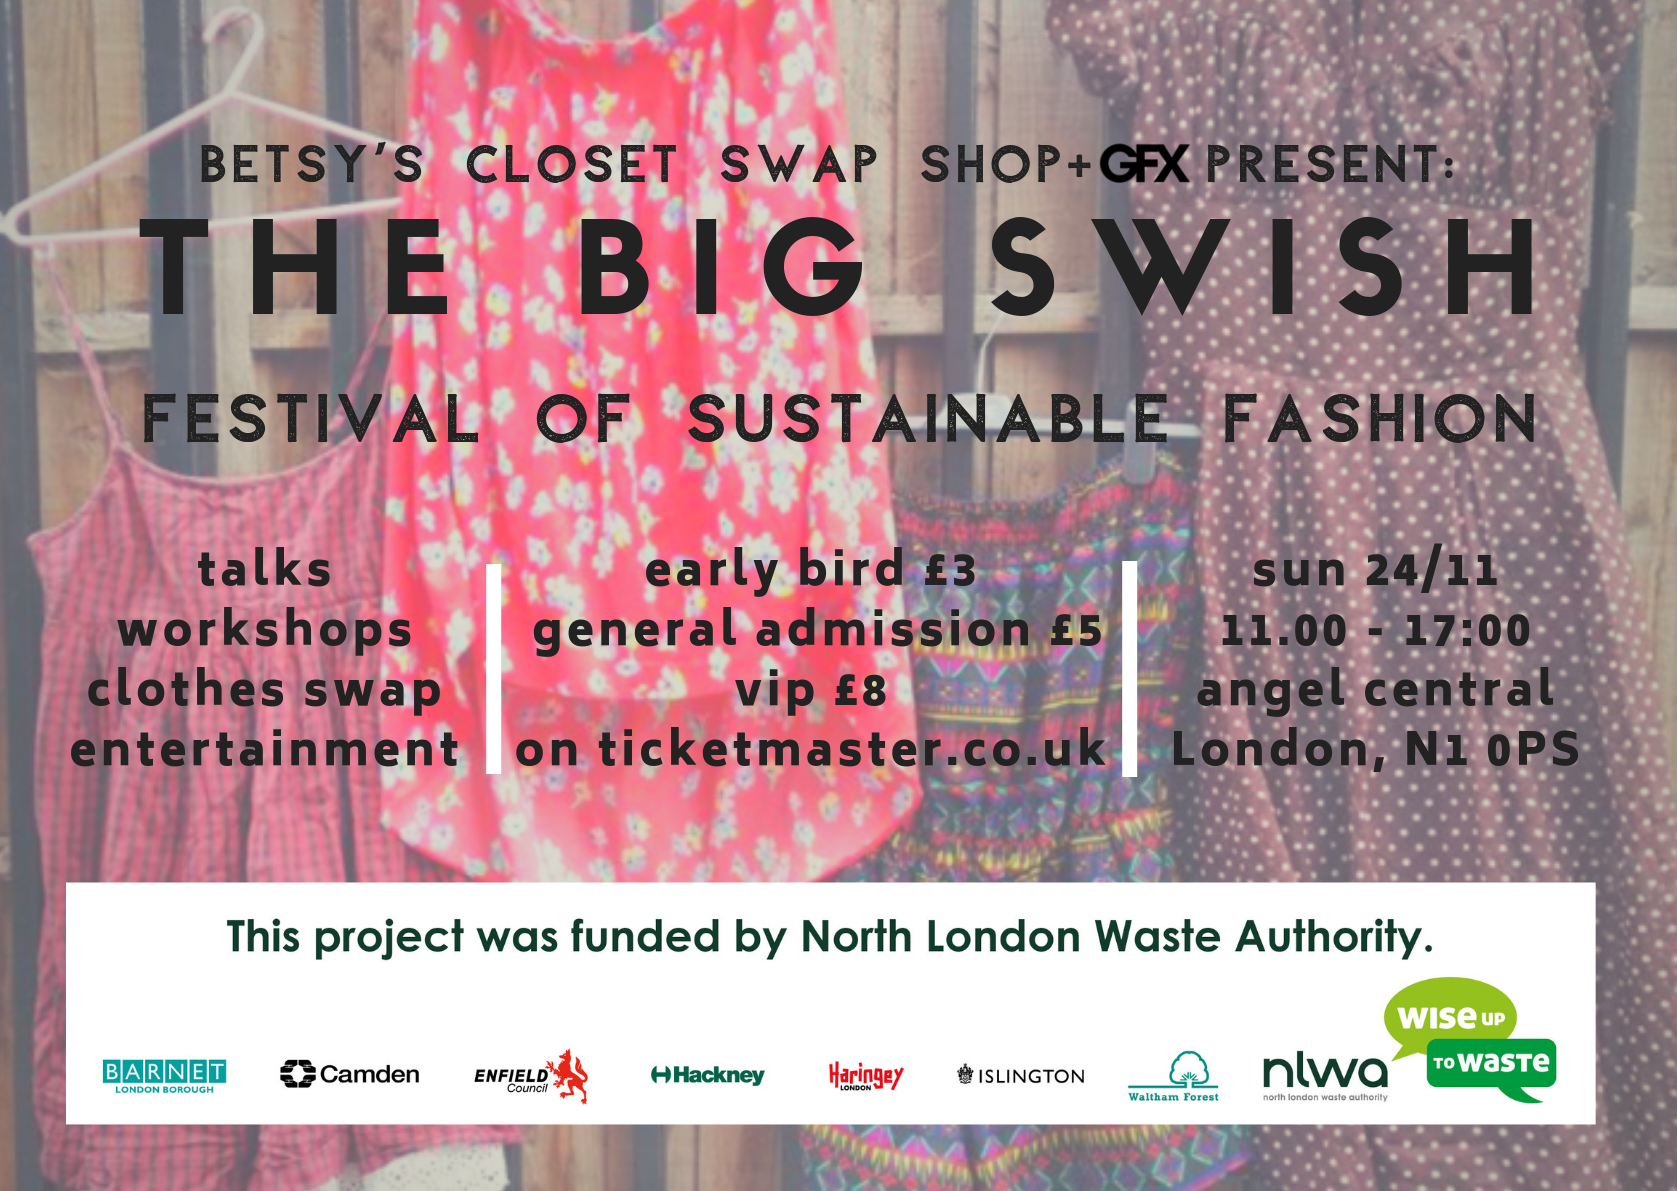 Betsy's Closet Swap Shop presents the Festival of Sustainable Fashion